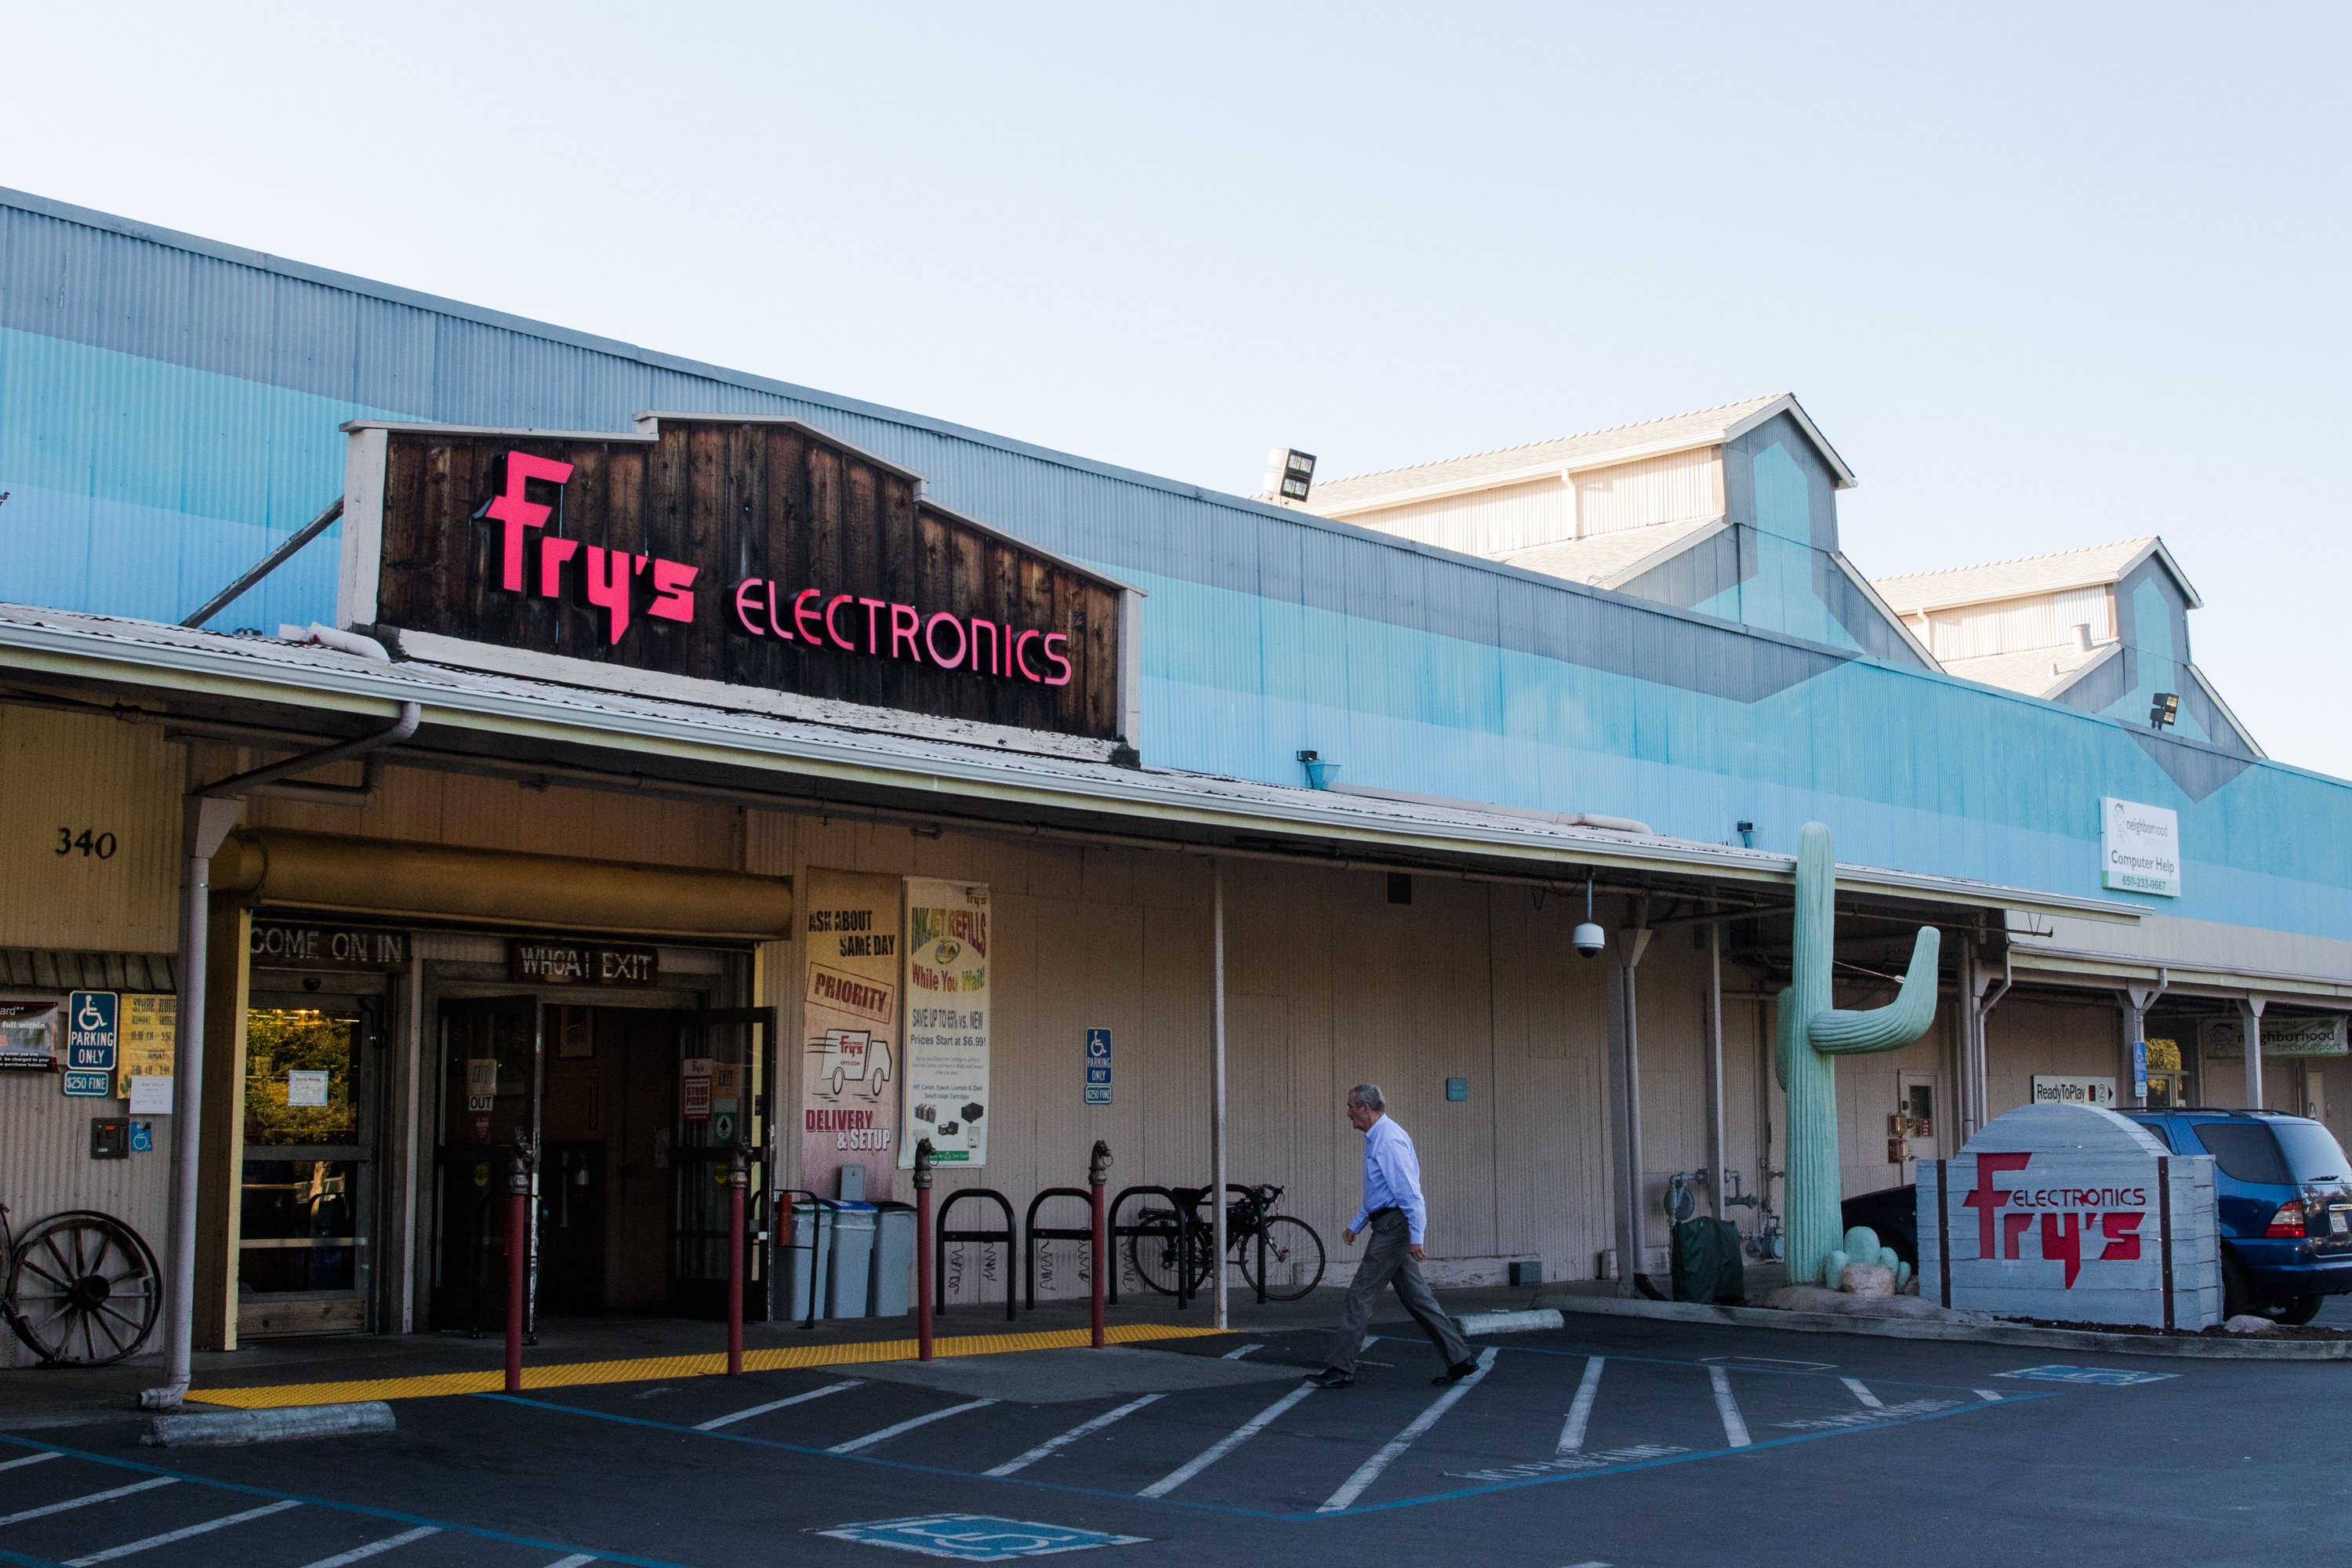 Fry's Electronics will close at 340 Portage Ave. in January. File photo by Veronica Weber.